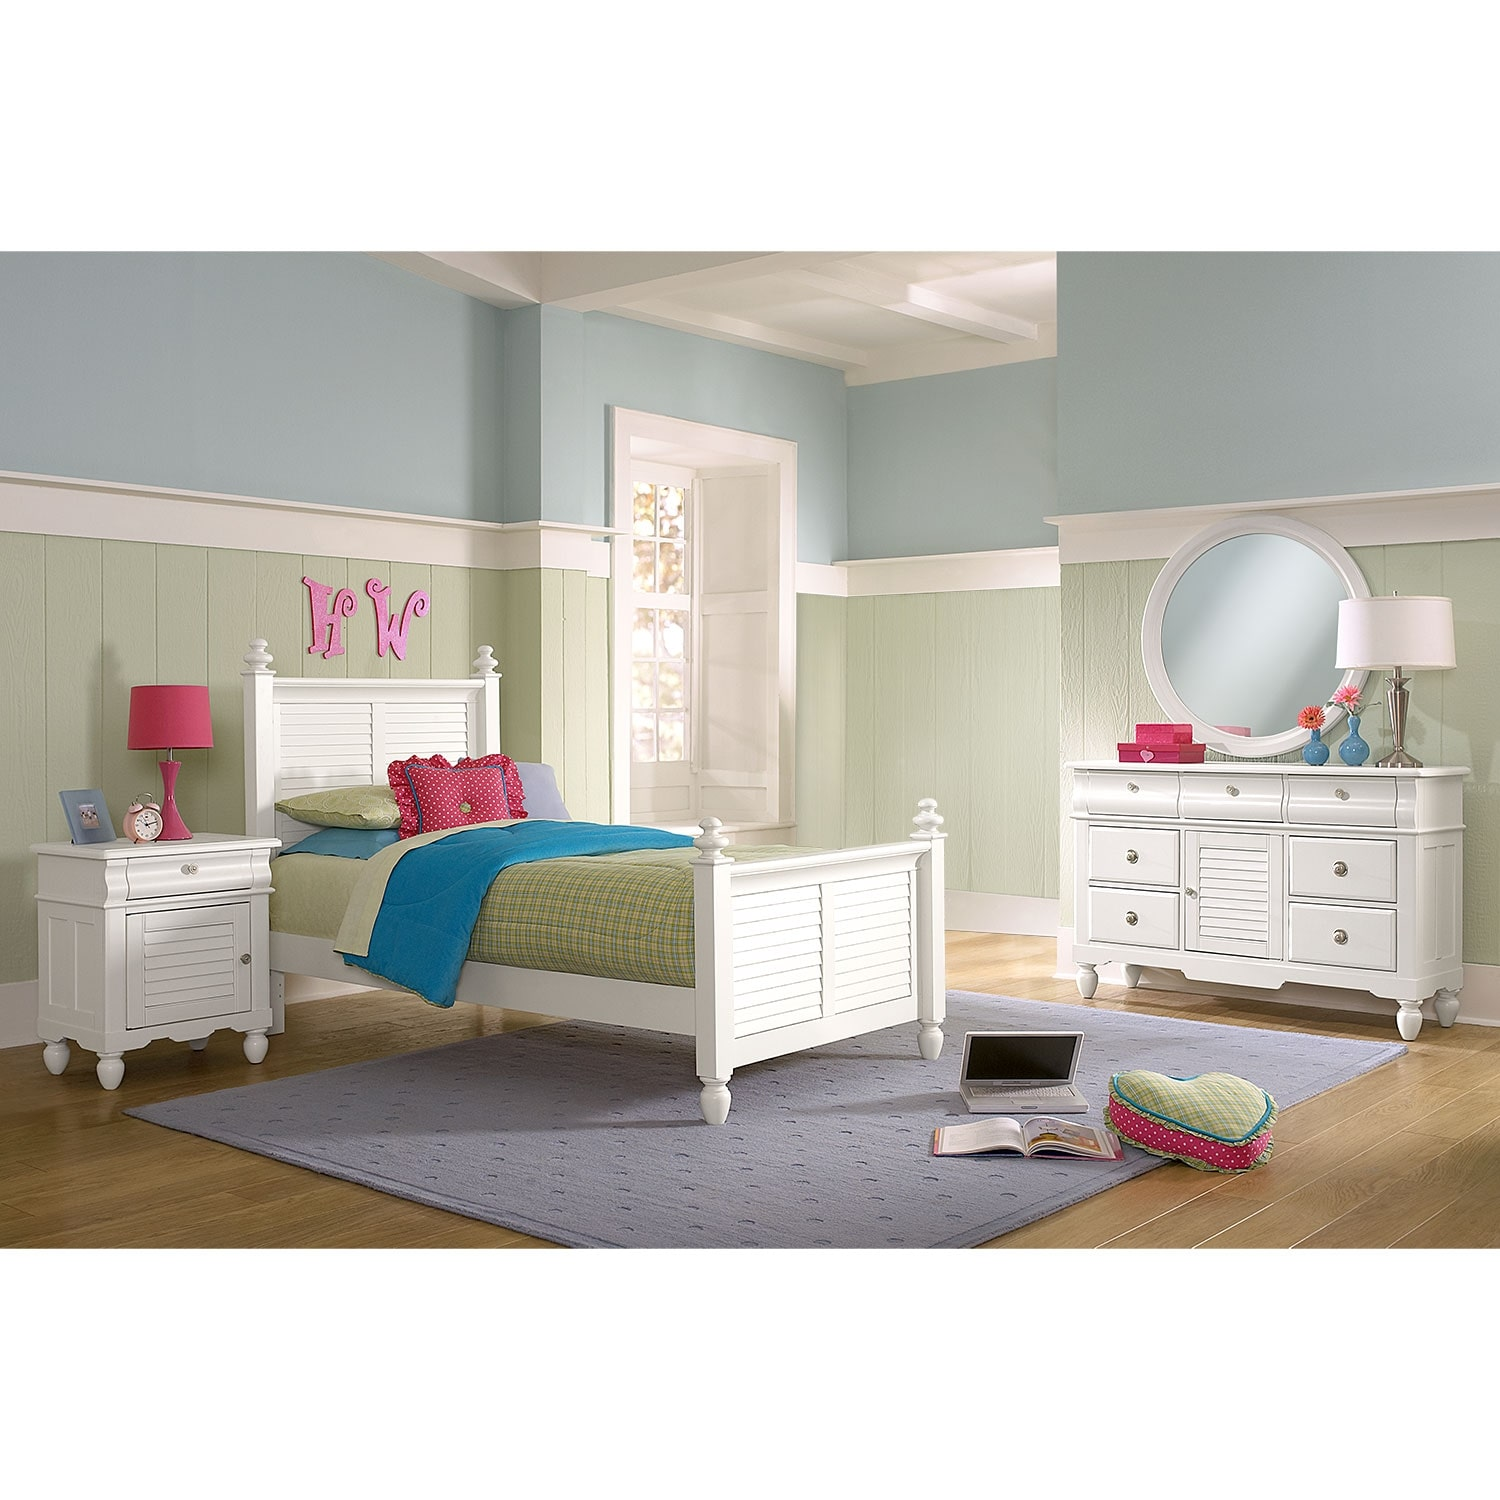 Seaside 6-Piece Twin Bedroom Set - White